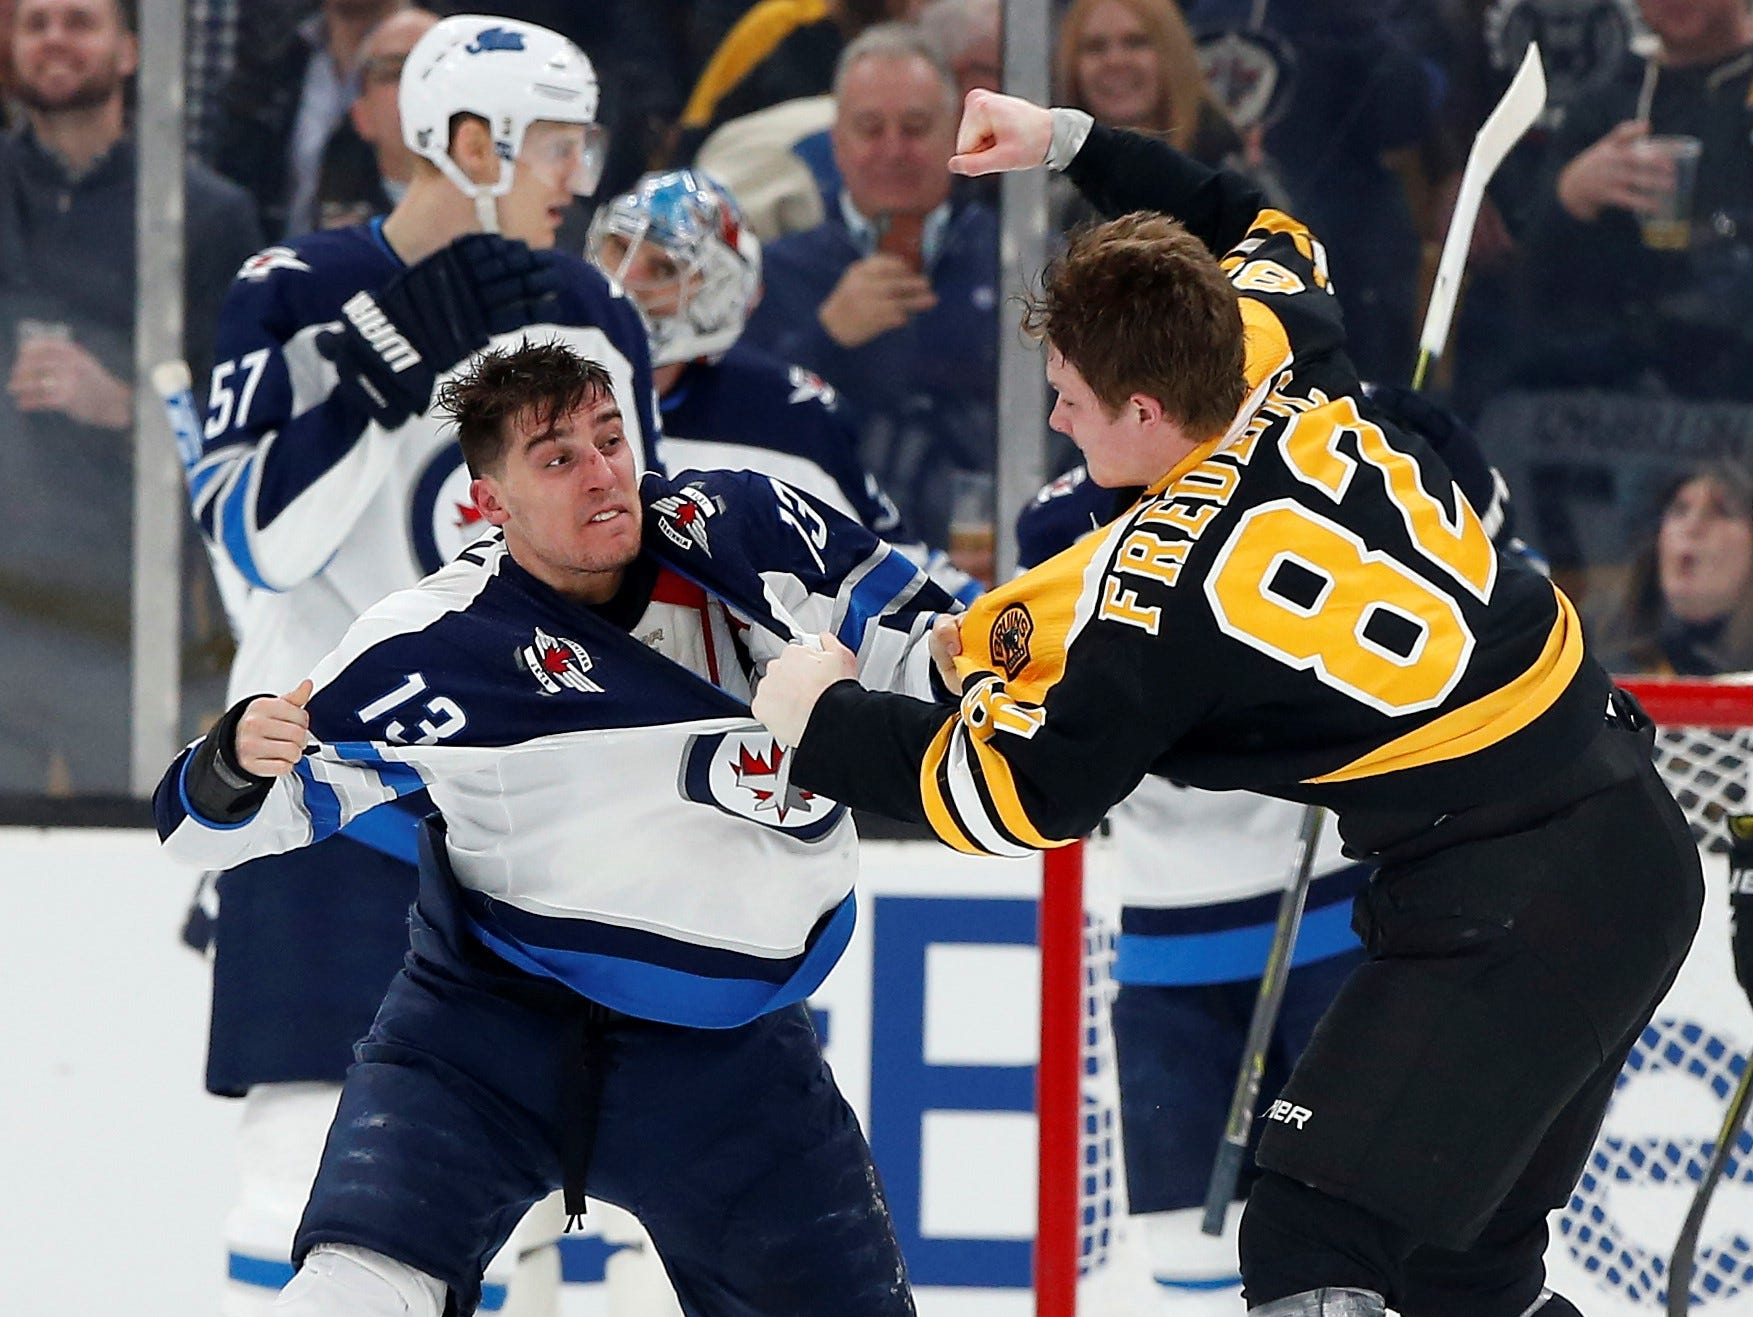 Jan. 29: Winnipeg Jets' Brandon Tanev vs. Boston Bruins' Trent Frederic